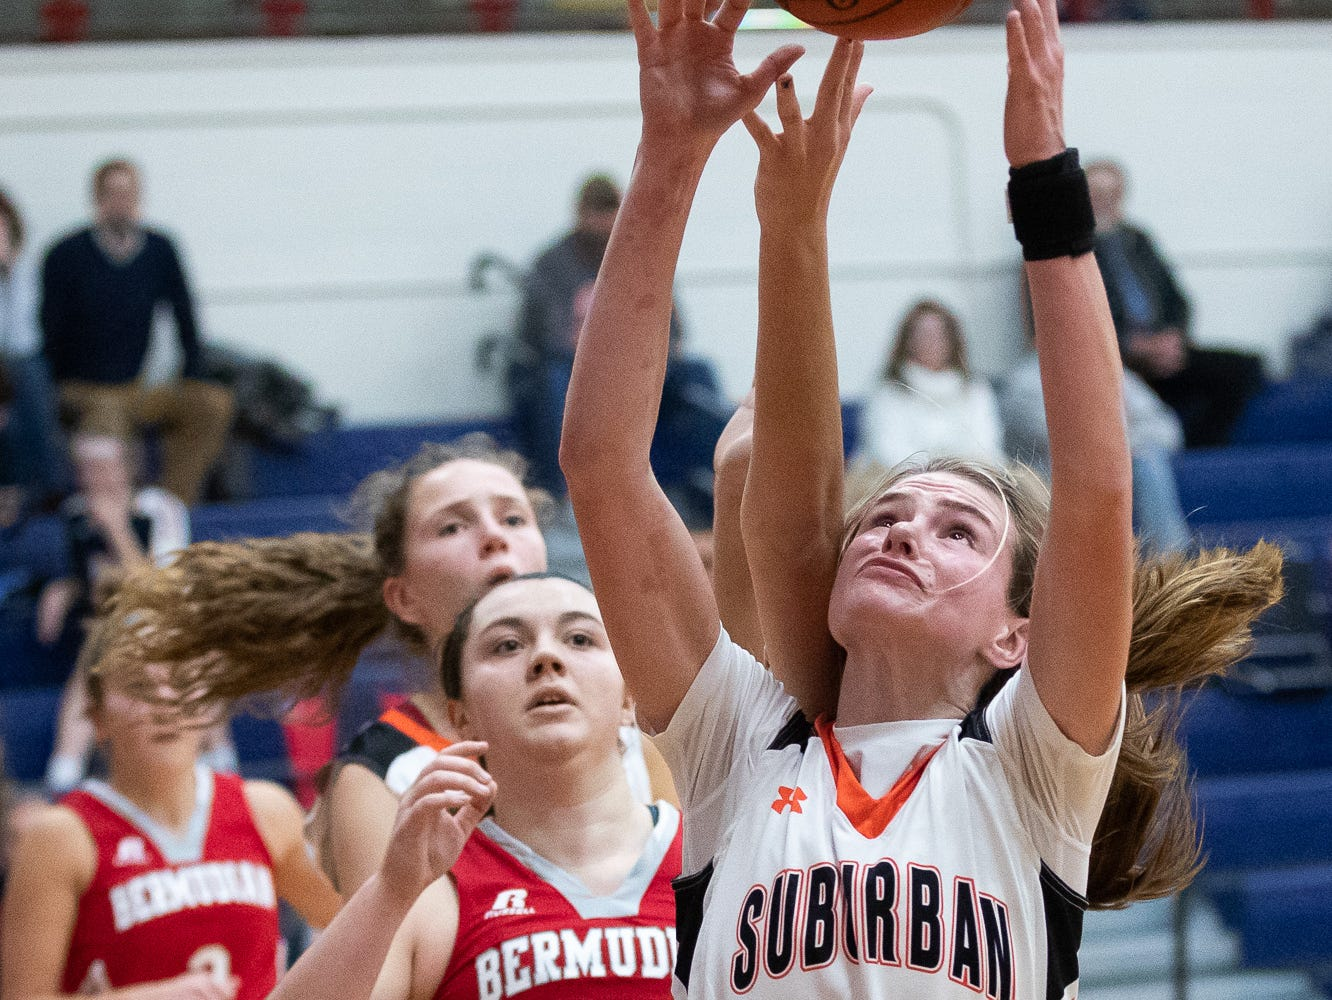 York Suburban's Elizabeth Mooney (12) shoots during the consolation game between Bermudian Springs and York Suburban during the New Oxford Girls Basketball Tip-Off Tournament, Saturday, Dec. 8, 2018, in New Oxford. The Bermudian Springs Lady Eagles defeated the York Suburban Lady Trojans 60-58.